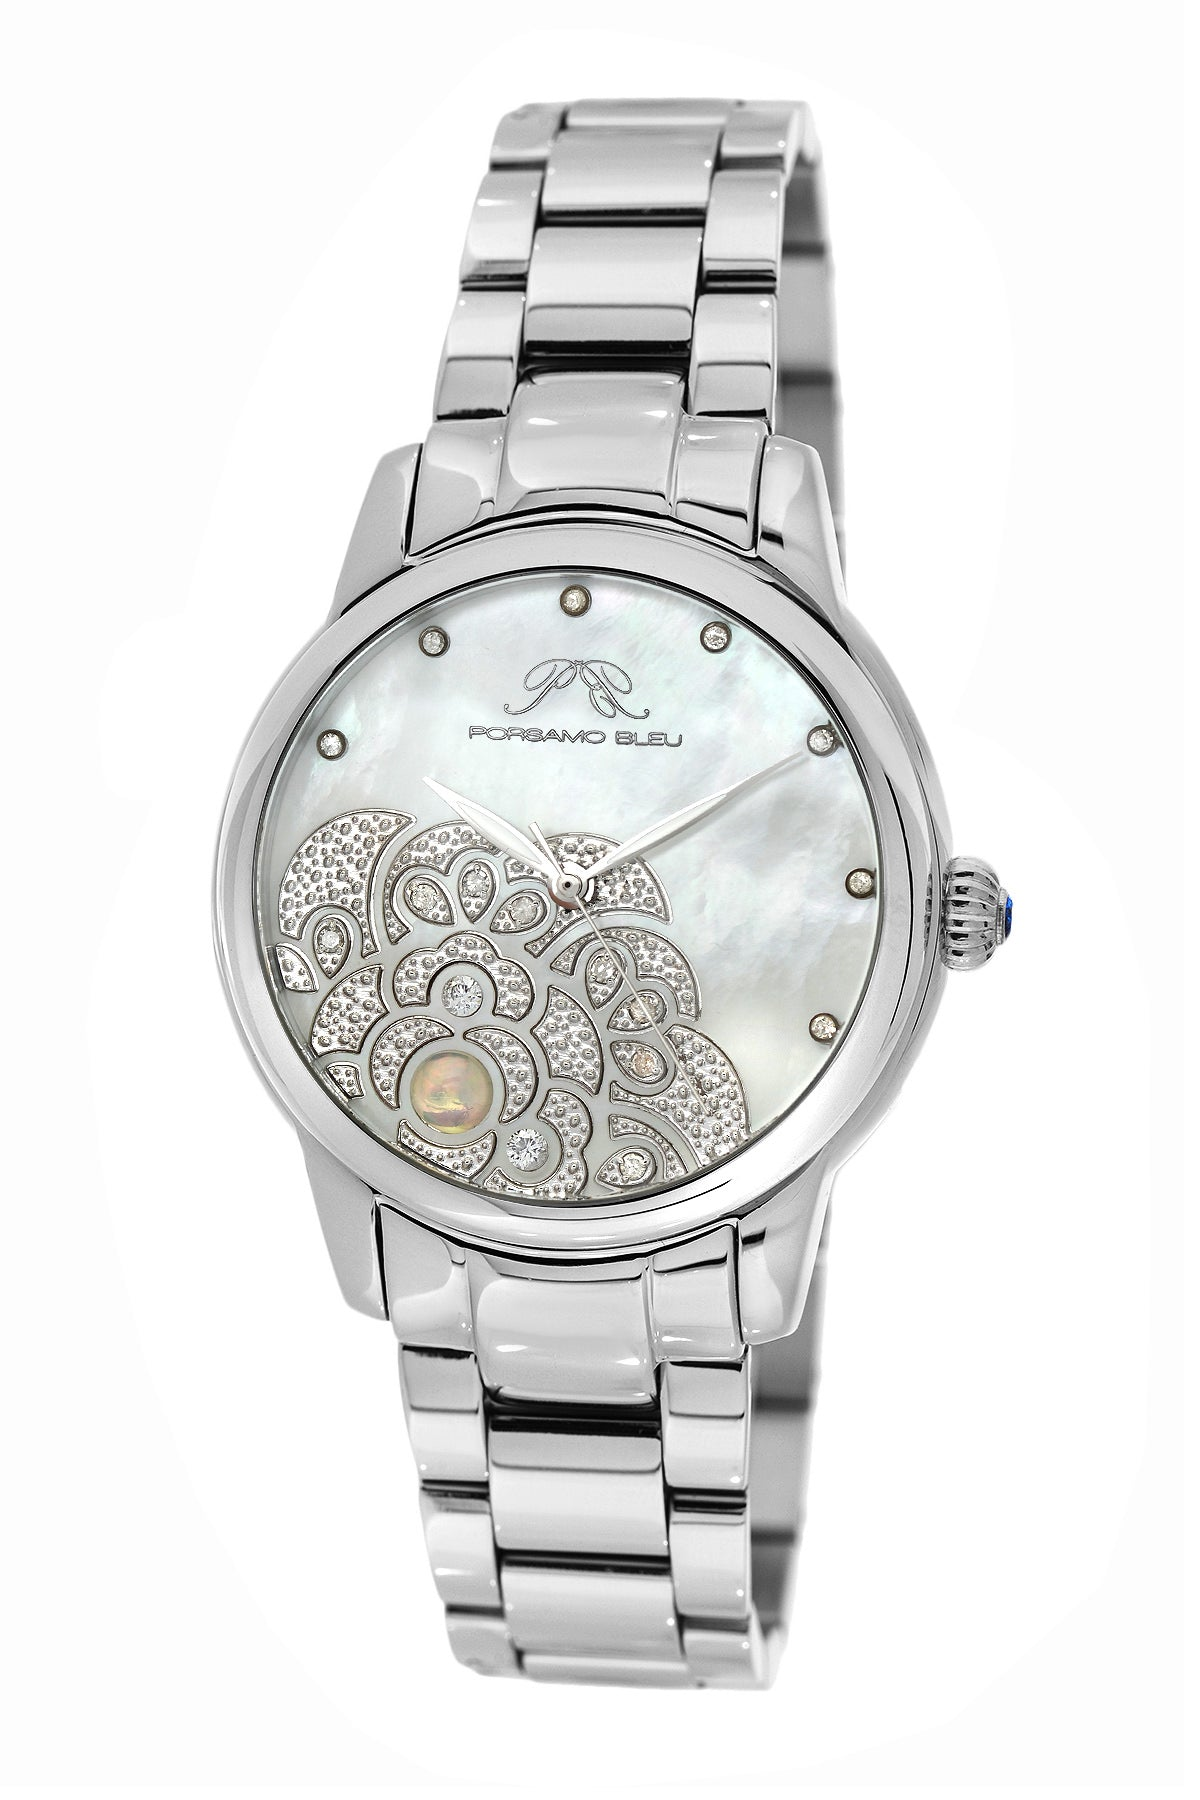 Porsamo Bleu Juliet luxury diamond, opal women's stainless steel watch, silver 701AJUS